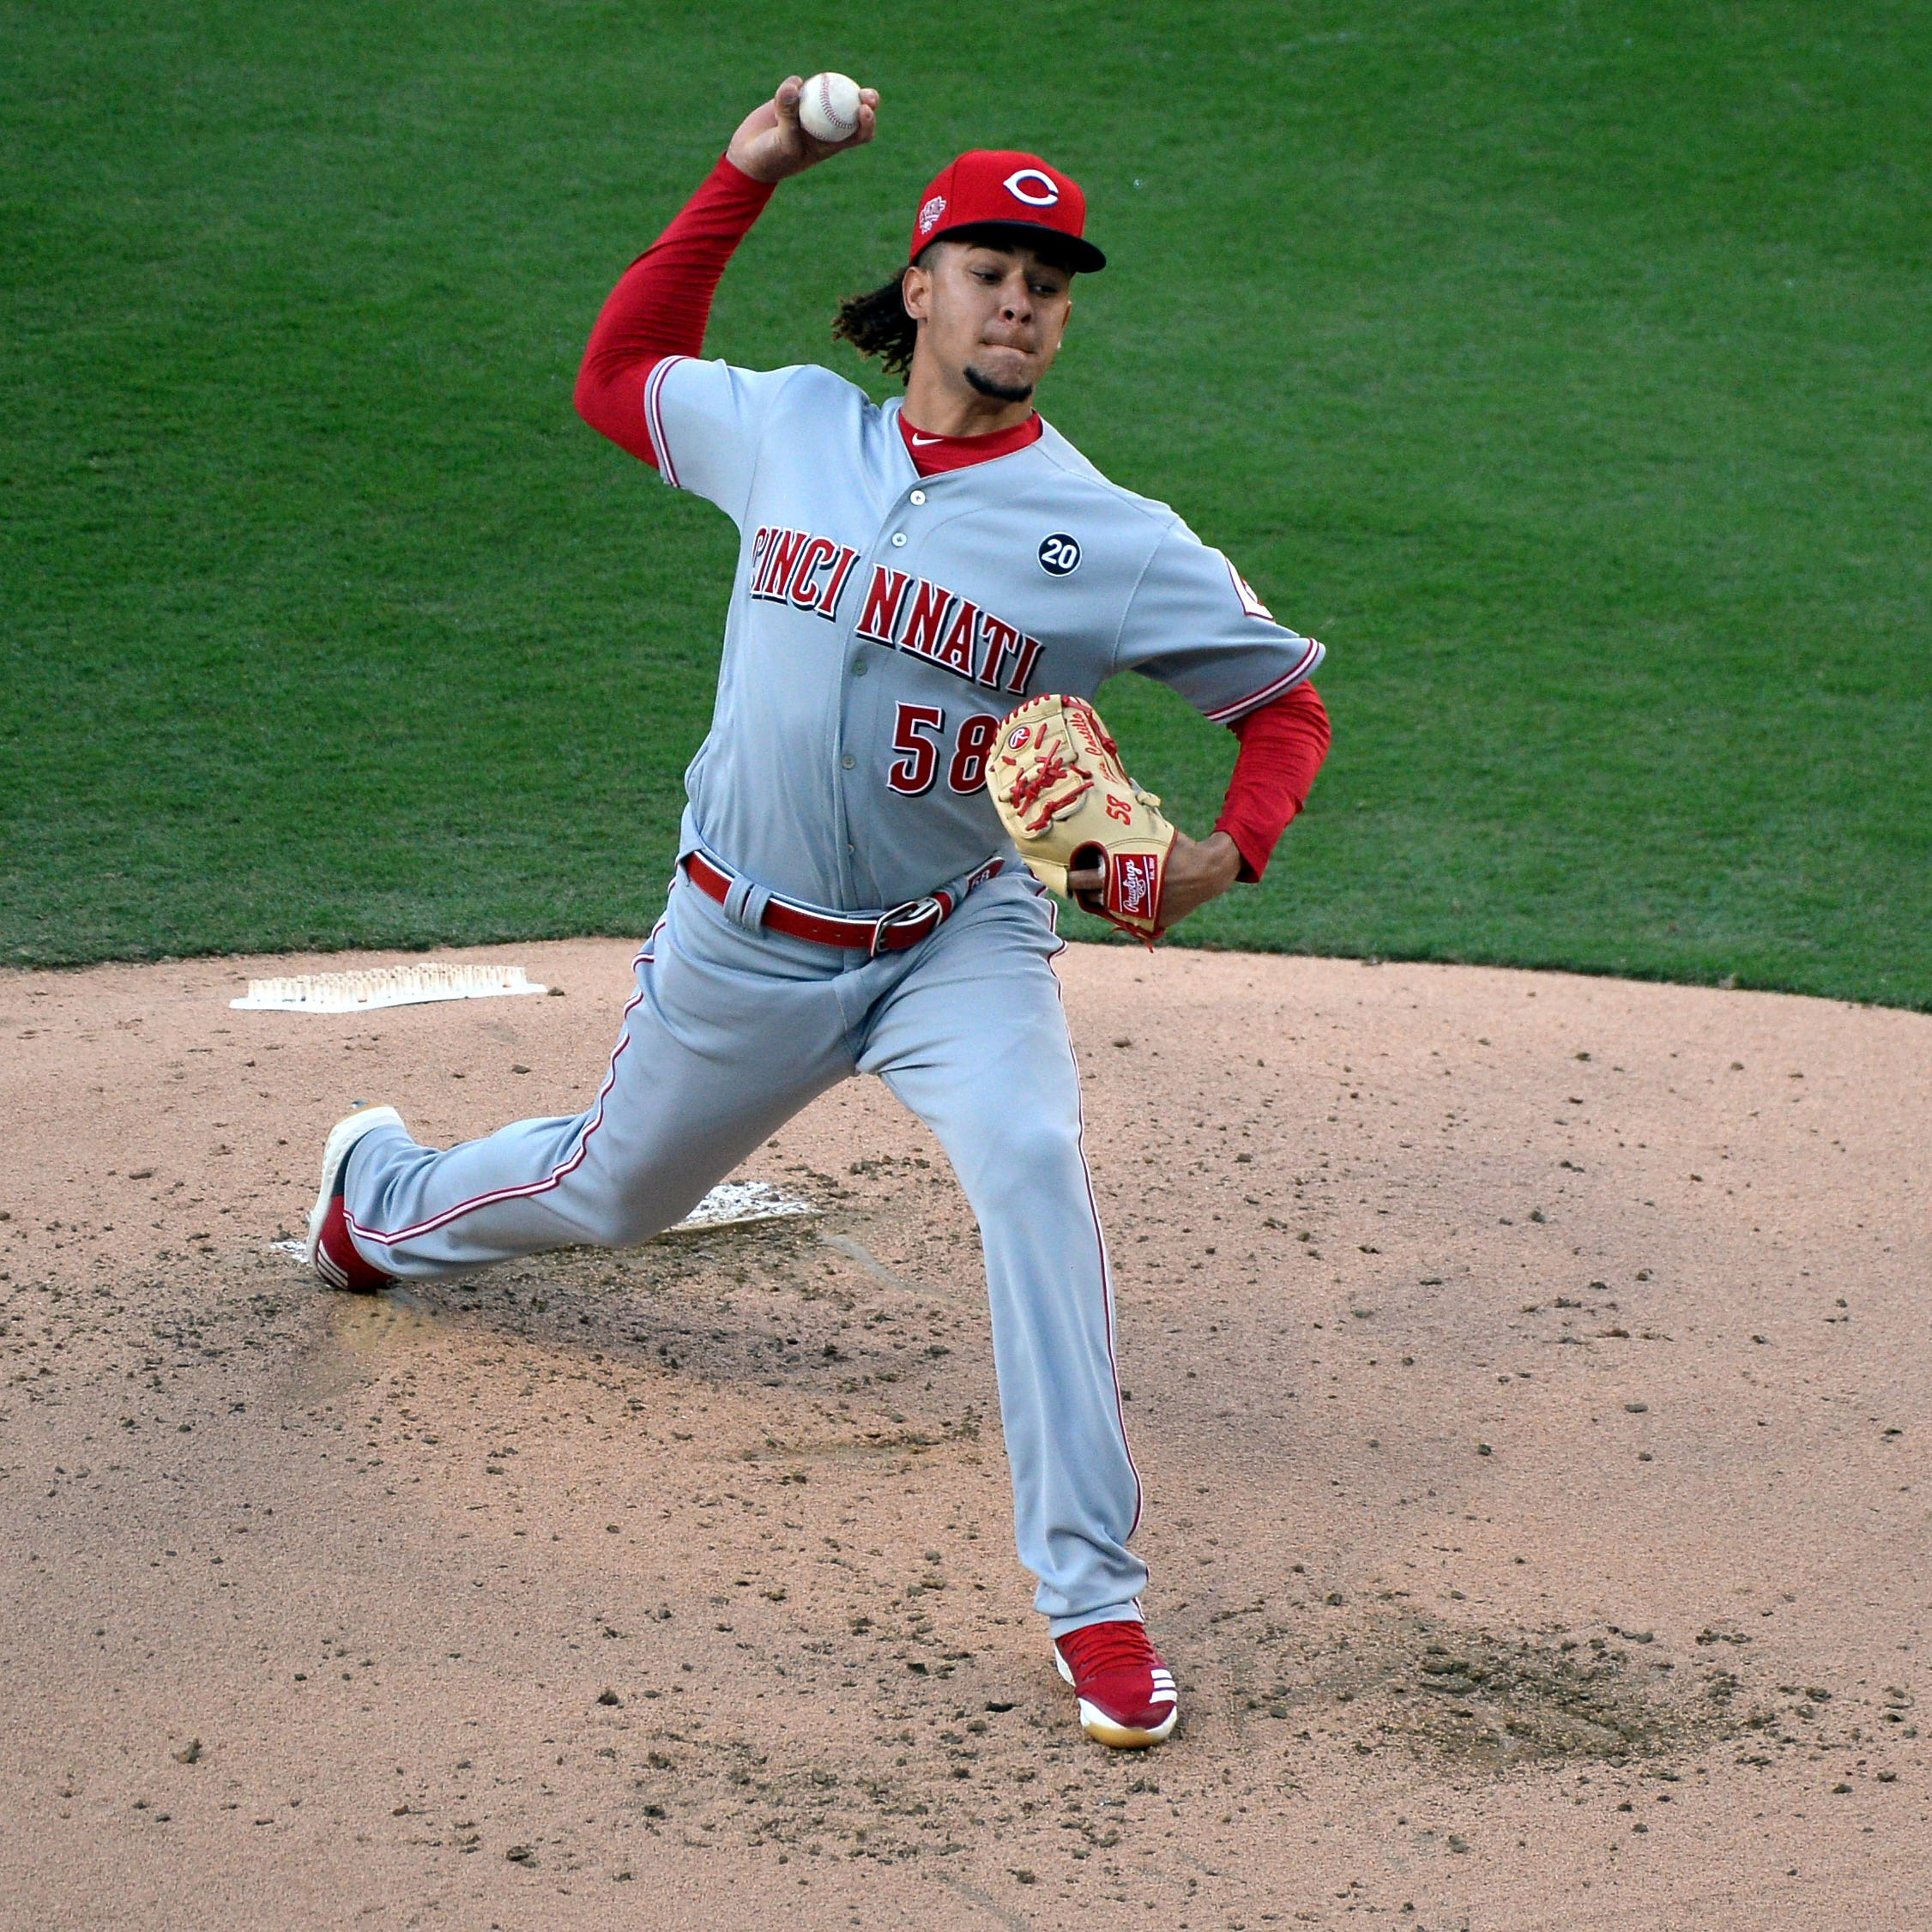 Luis Castillo continues his stellar season in Cincinnati Reds' win over San Diego Padres